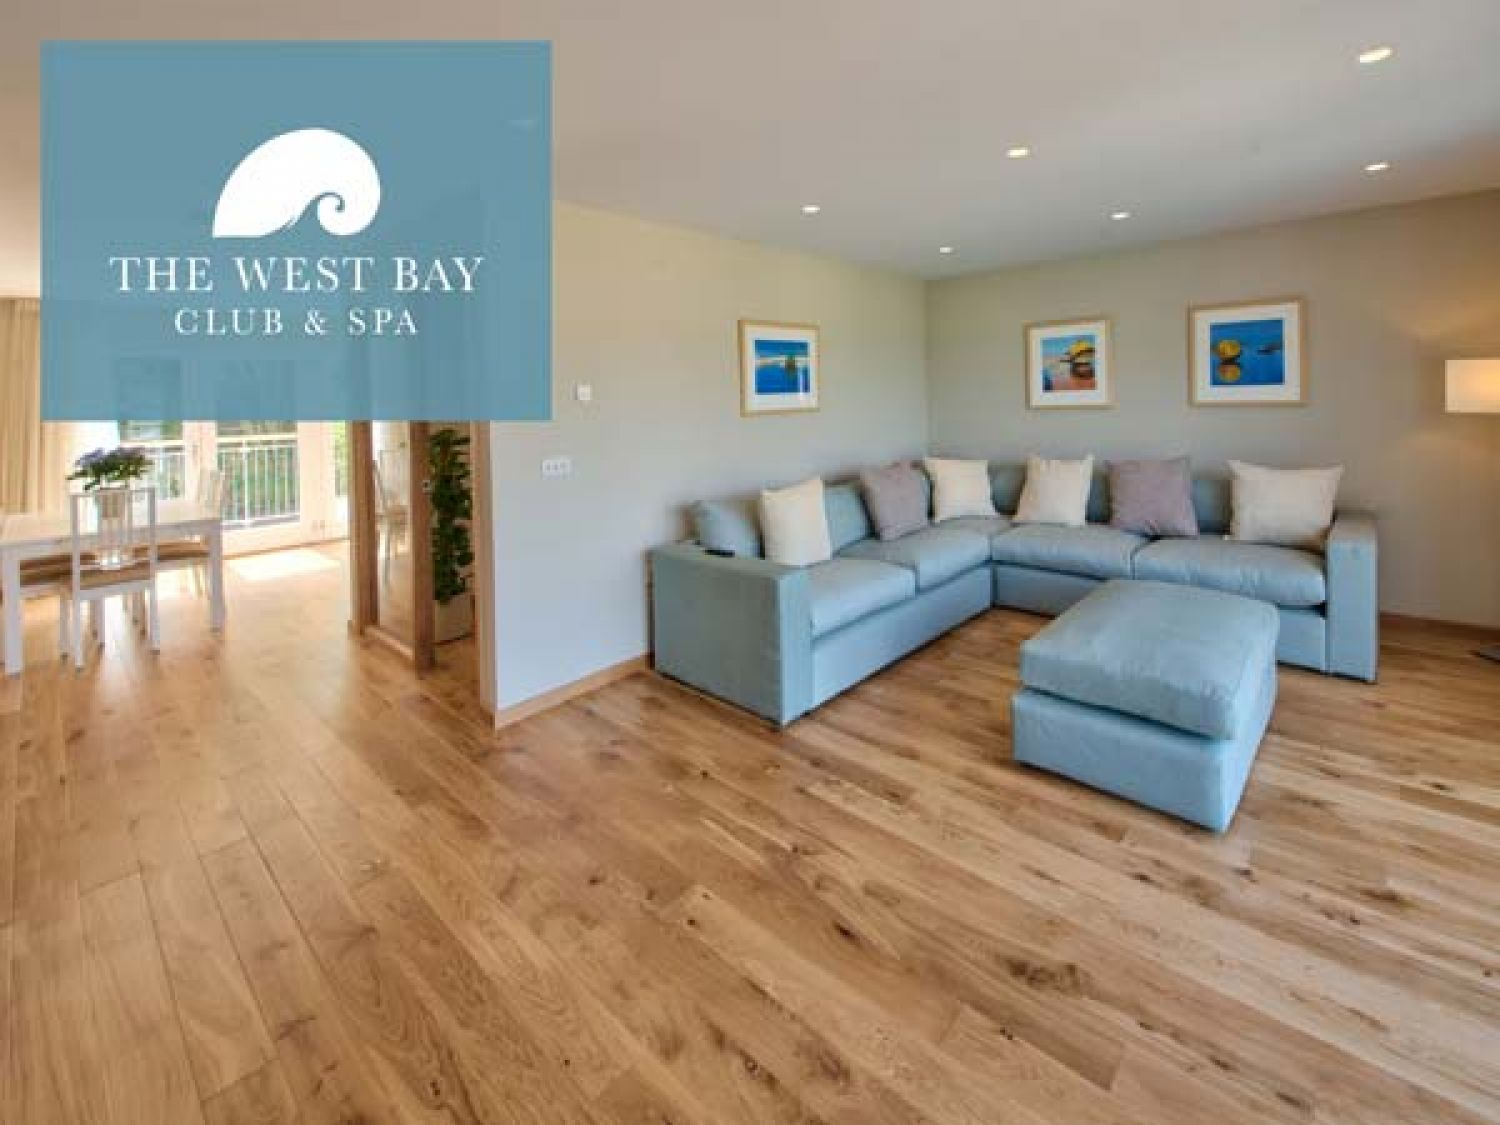 Four bedroom house at The West Bay Club & Spa - Isle of Wight & Hampshire - 943926 - photo 1